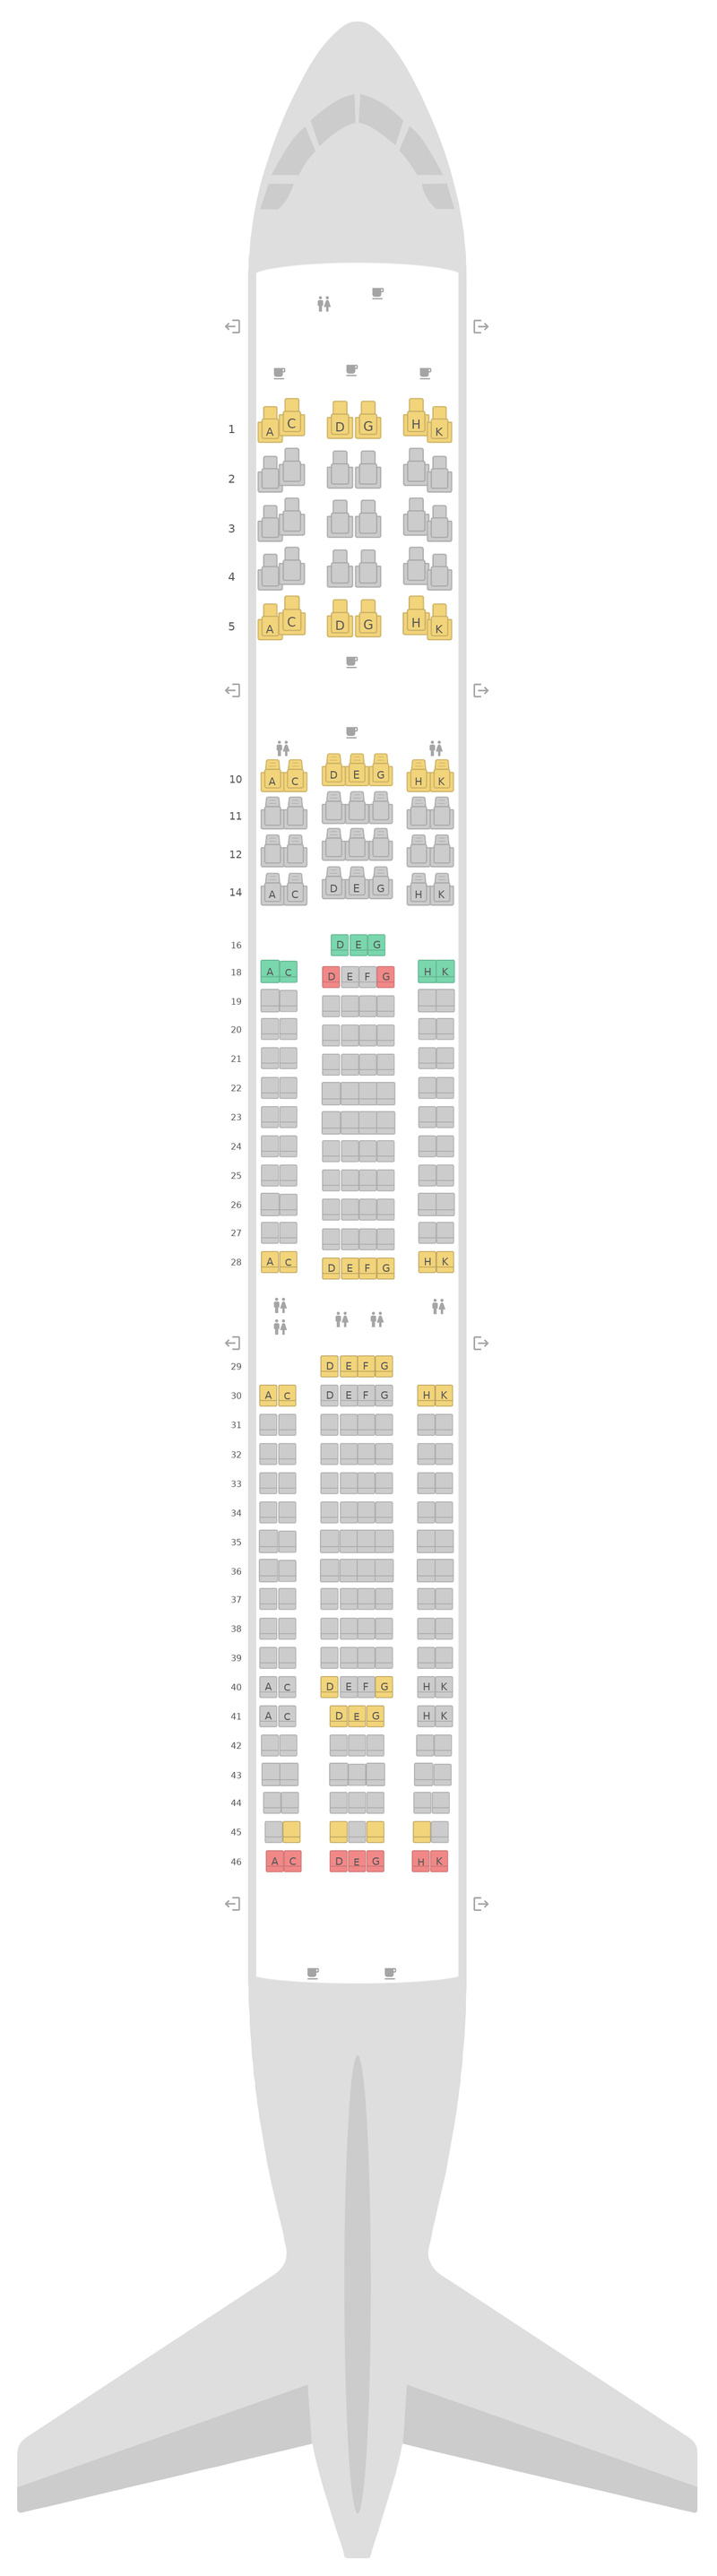 Seat Map Eurowings Airbus A330-300 (333)